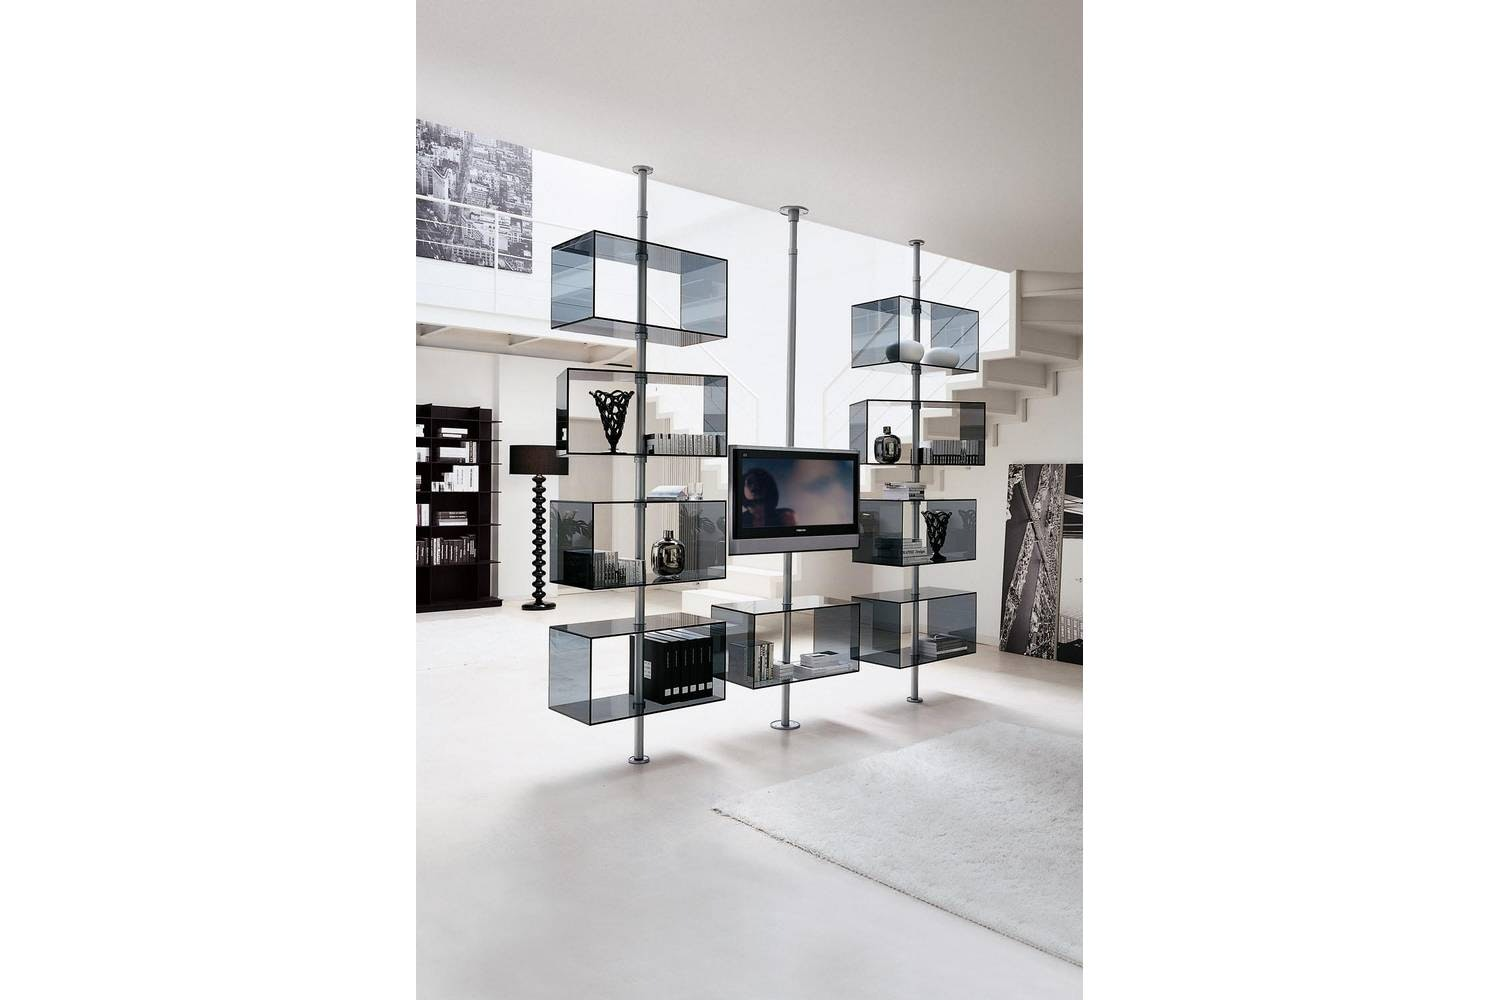 Domino TV Stand by T. Colzani for Porada